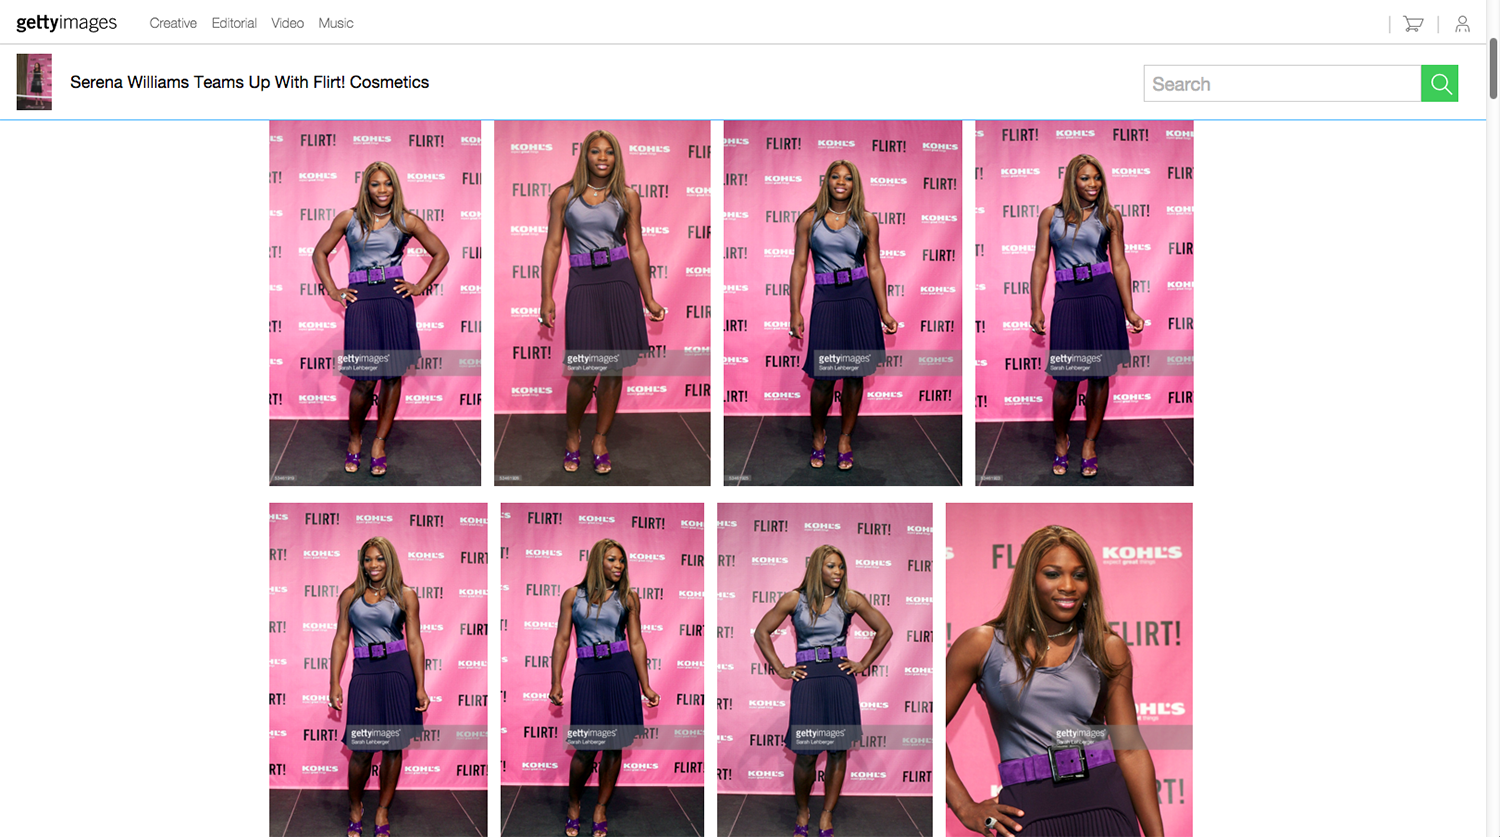 Serena Williams Assignment for Getty Images